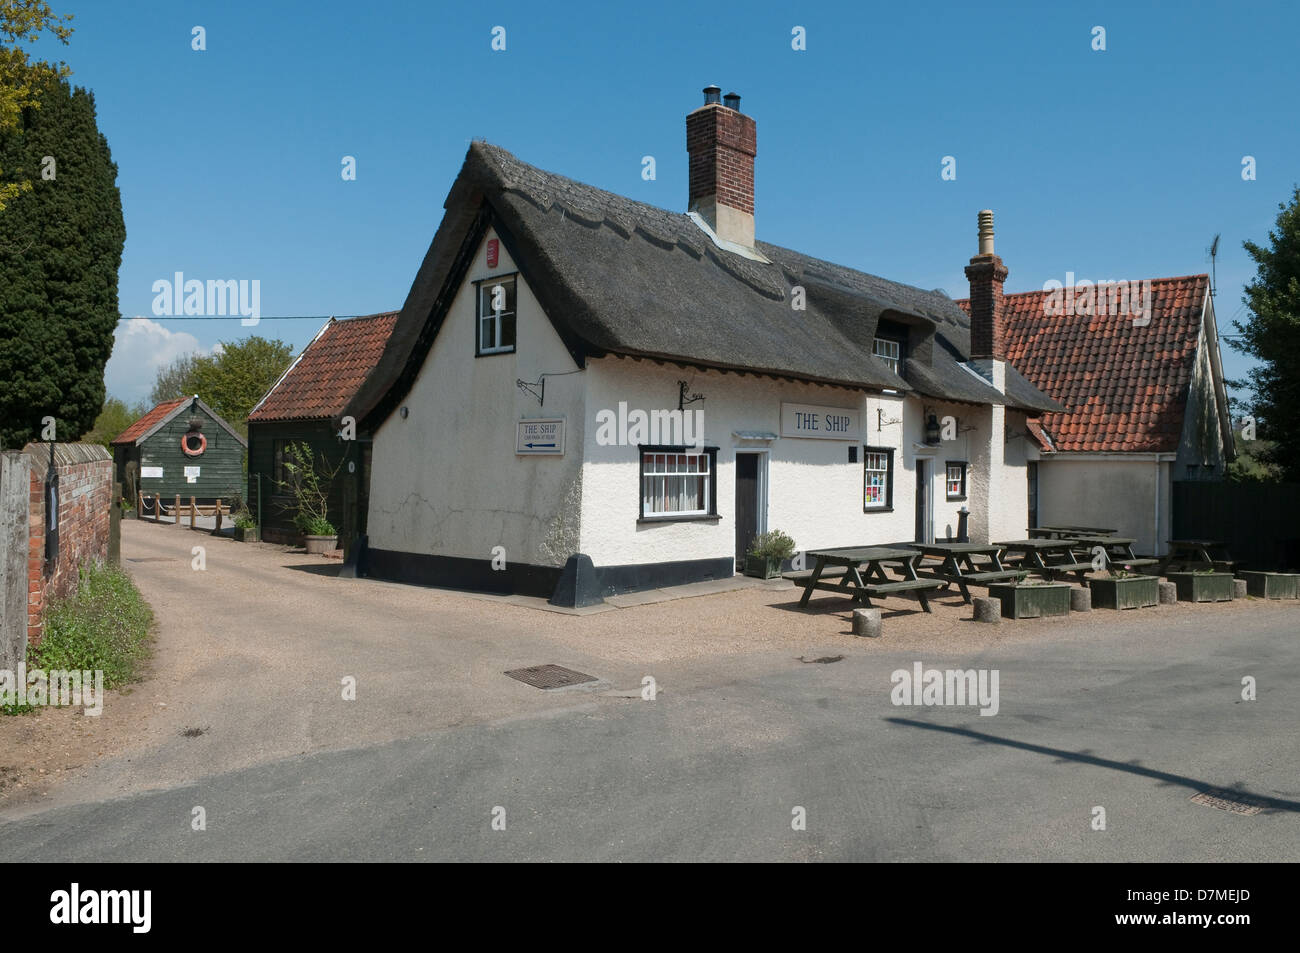 The Ship - local pub in Levington, Suffolk, UK Stock Photo, Royalty ...